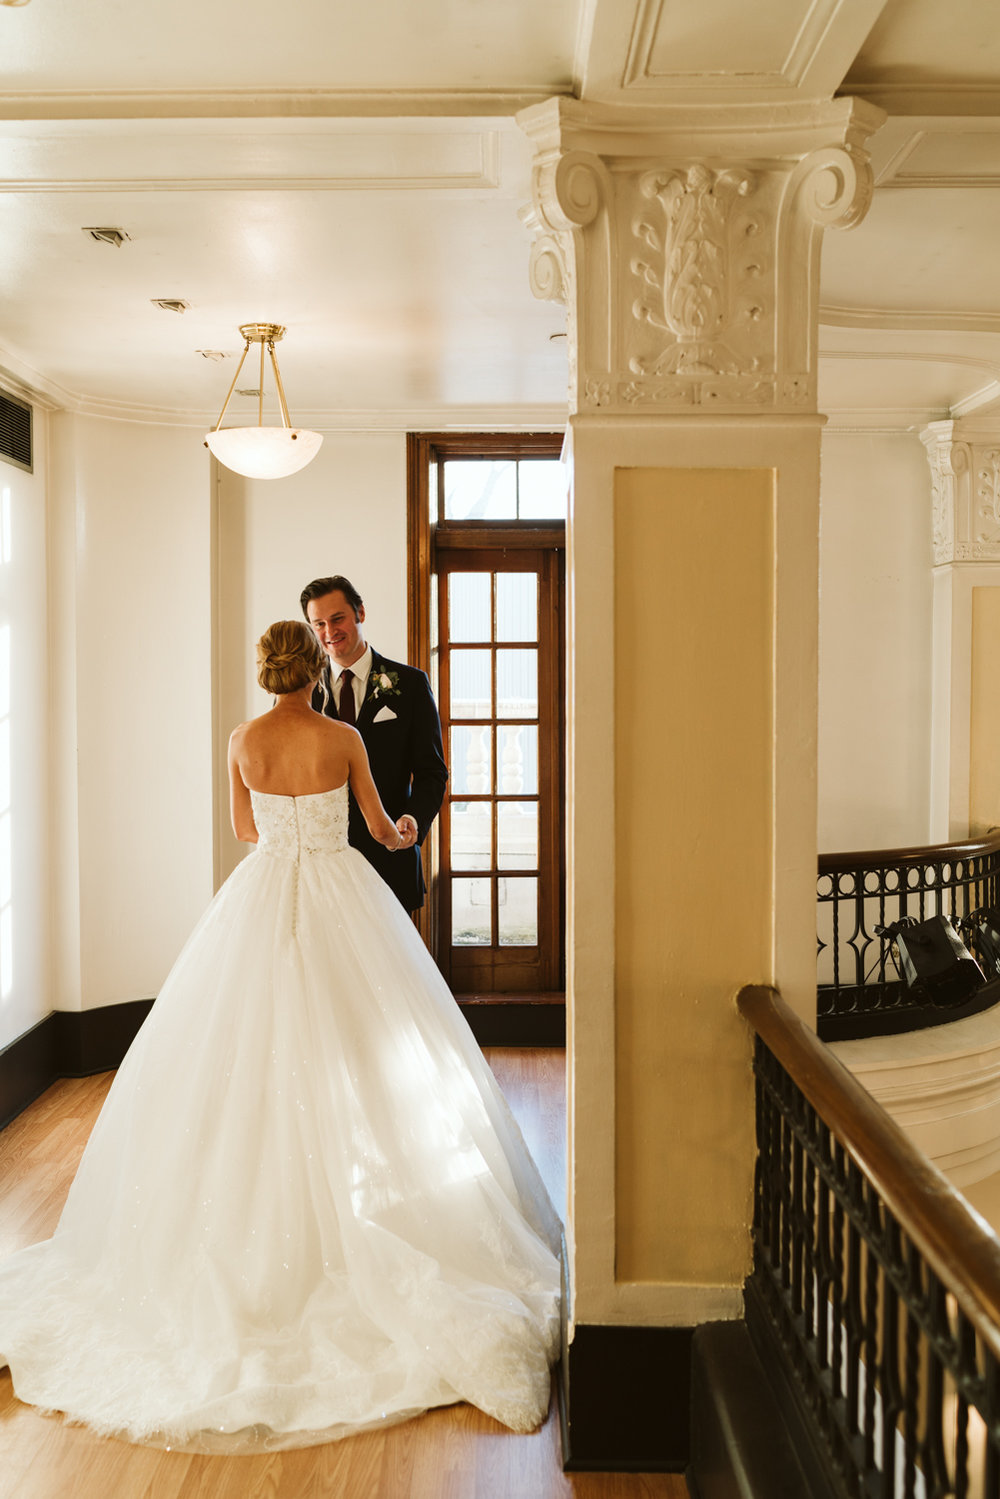 April Yentas Photography - Allie & Sean slideshow-33.jpg